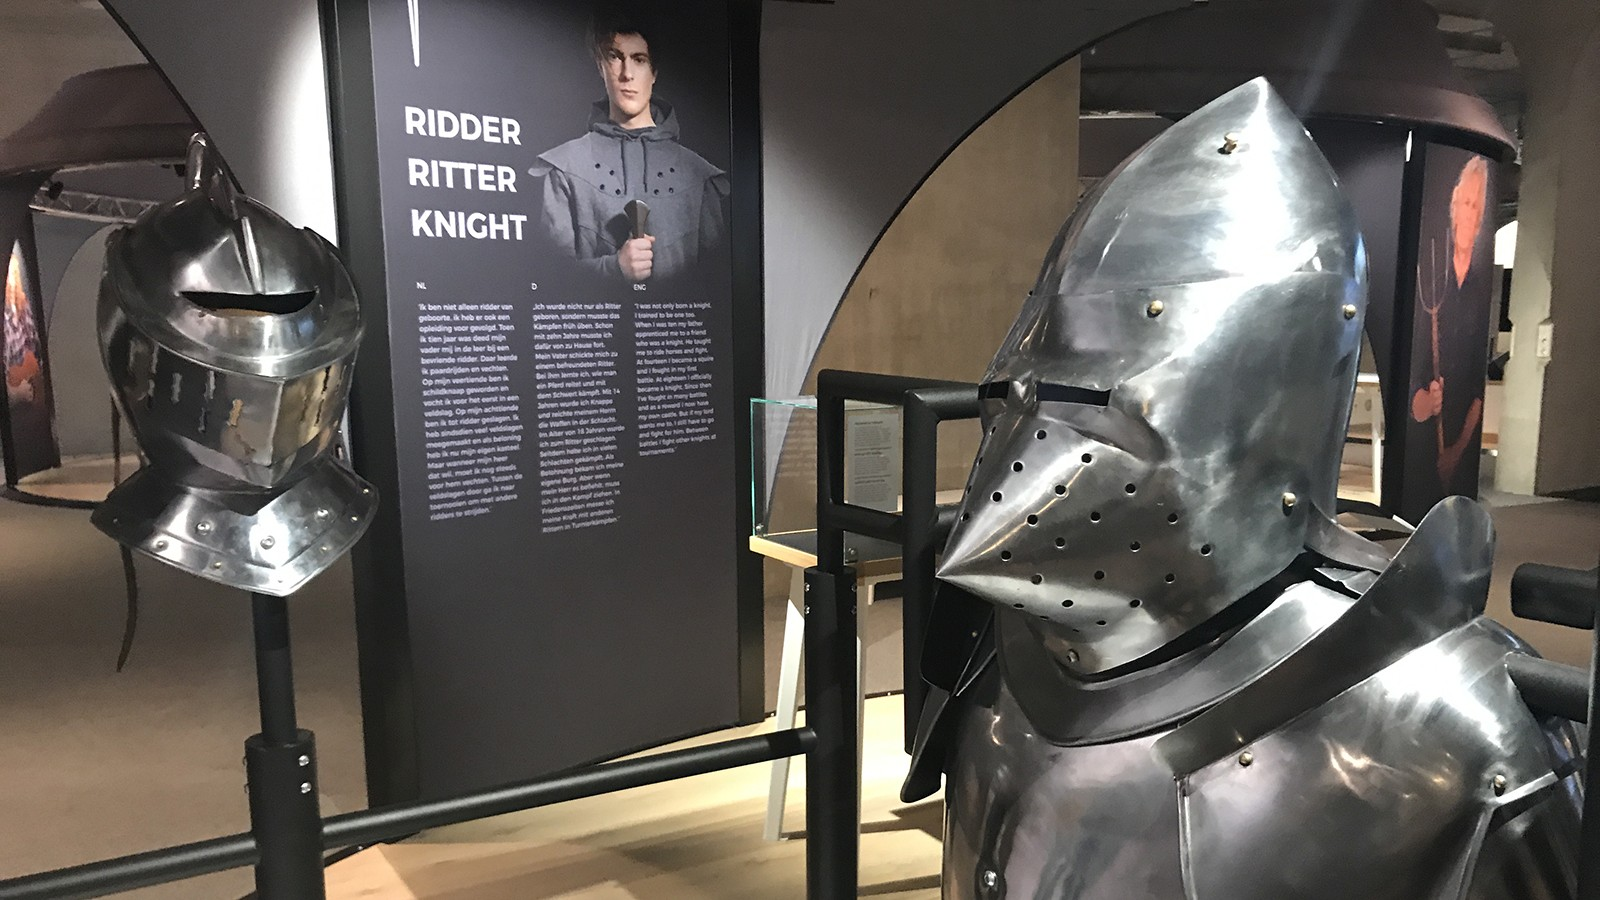 Knights and Castles, a new look at the Middle Ages